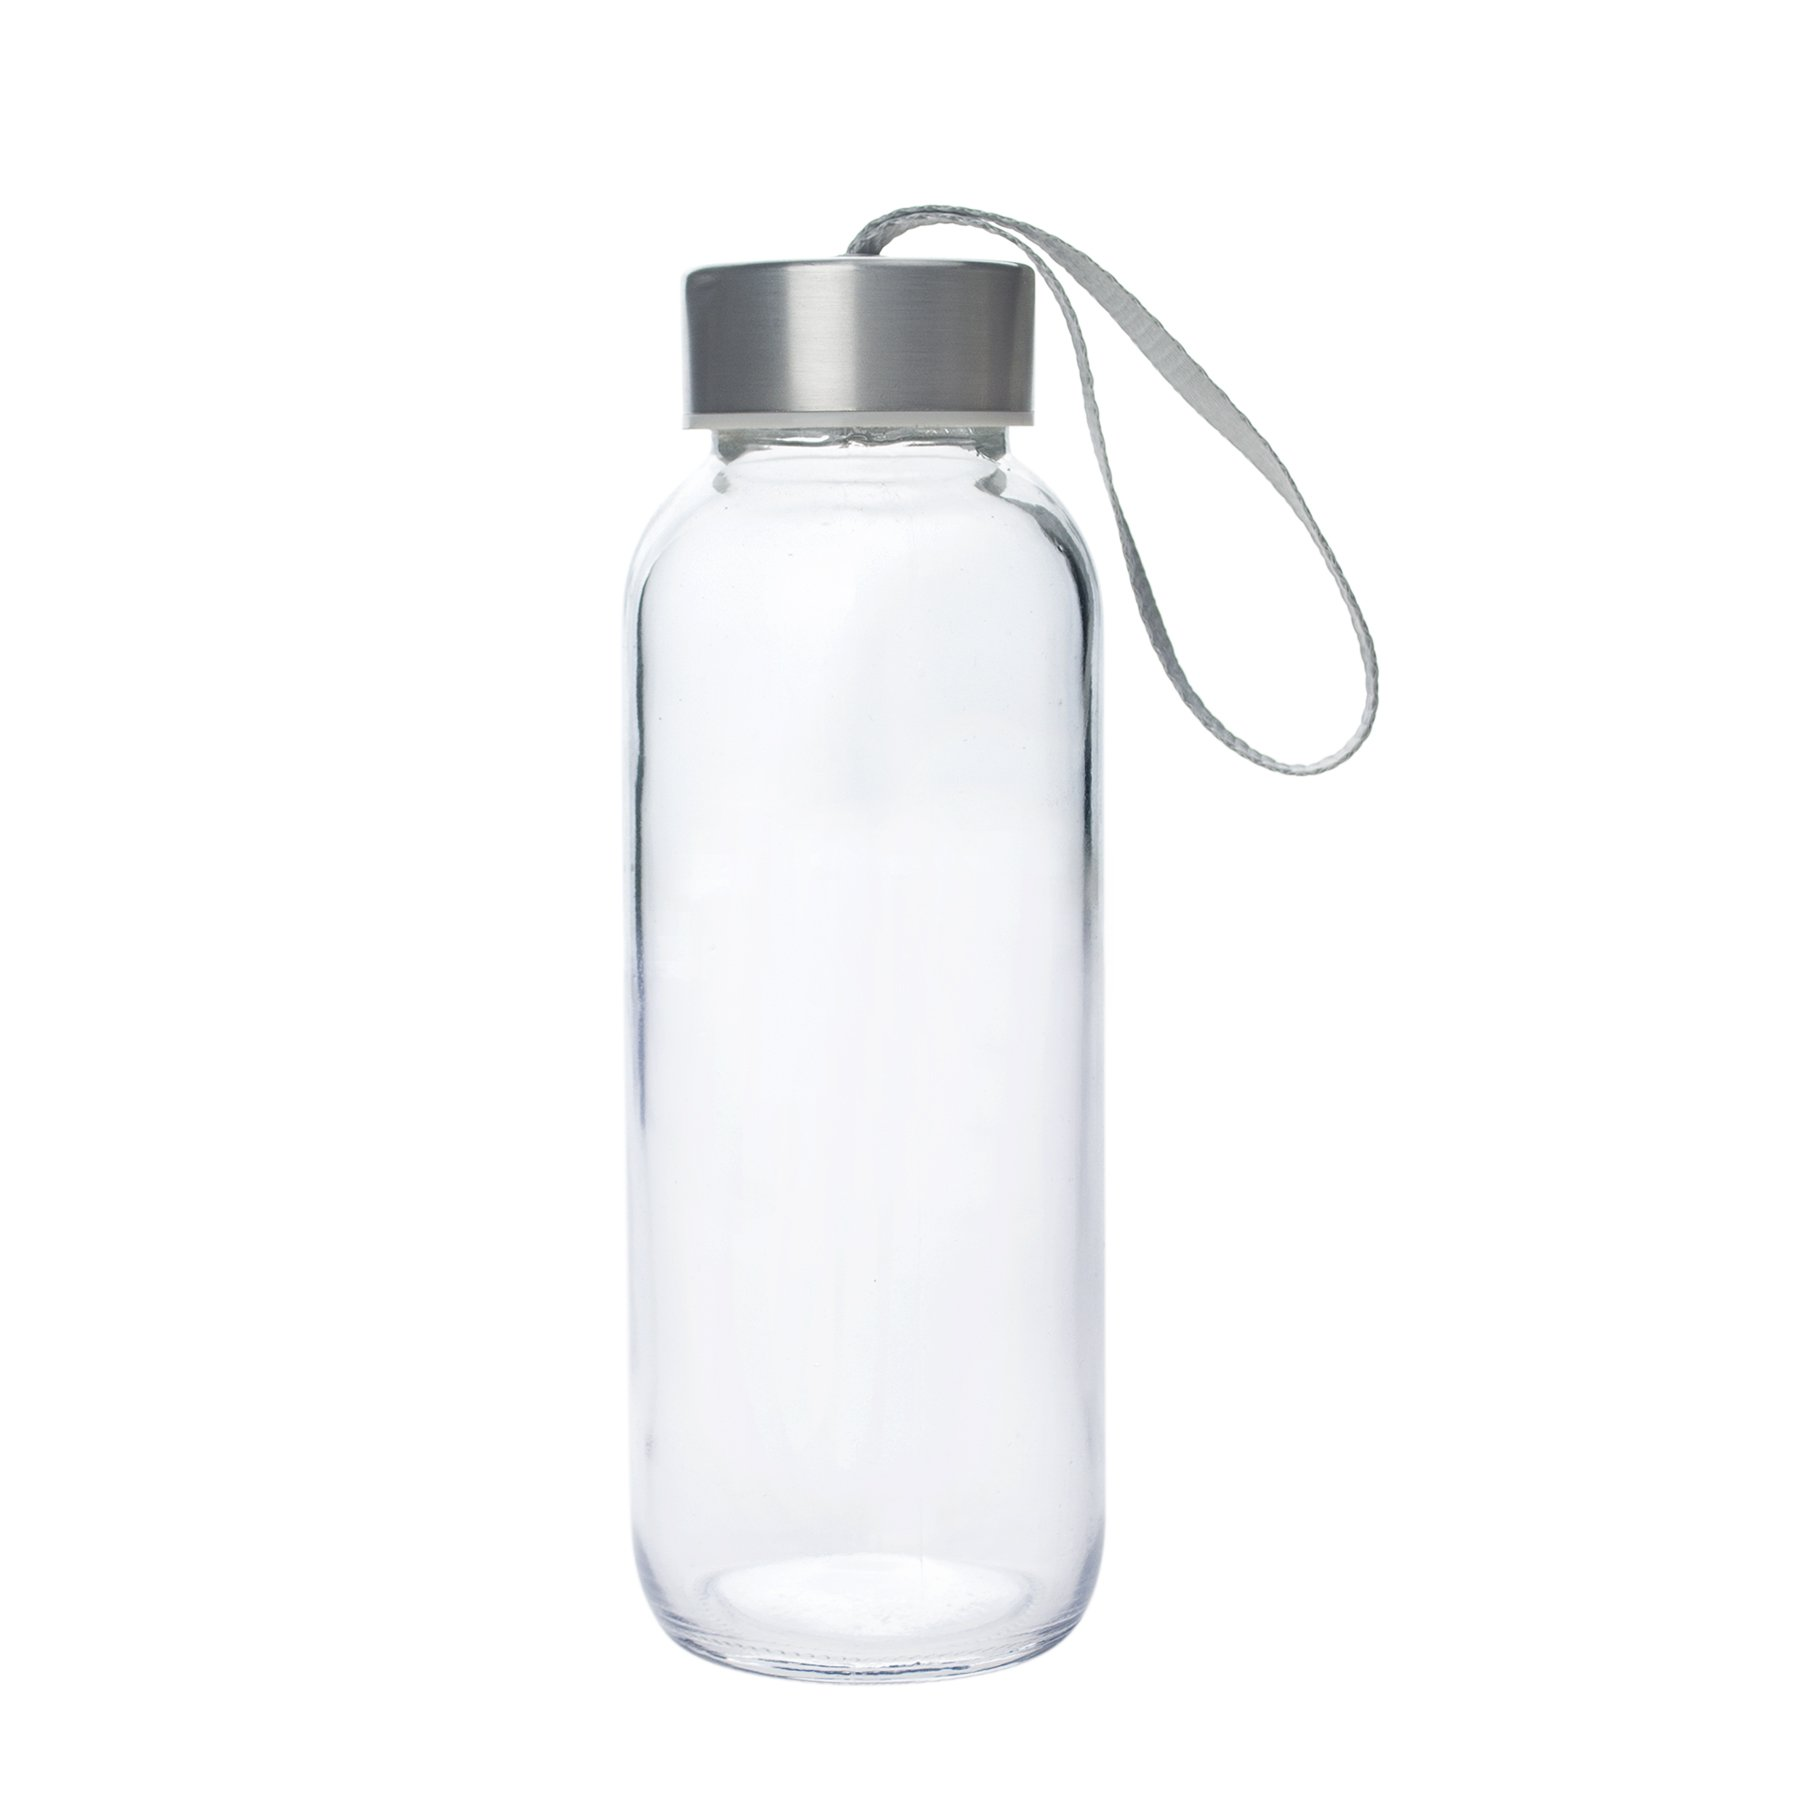 Aspire 5oz, 10oz, 14oz, 18oz Water Bottle, Stainless Steel Caps with Carrying Loop-10oz